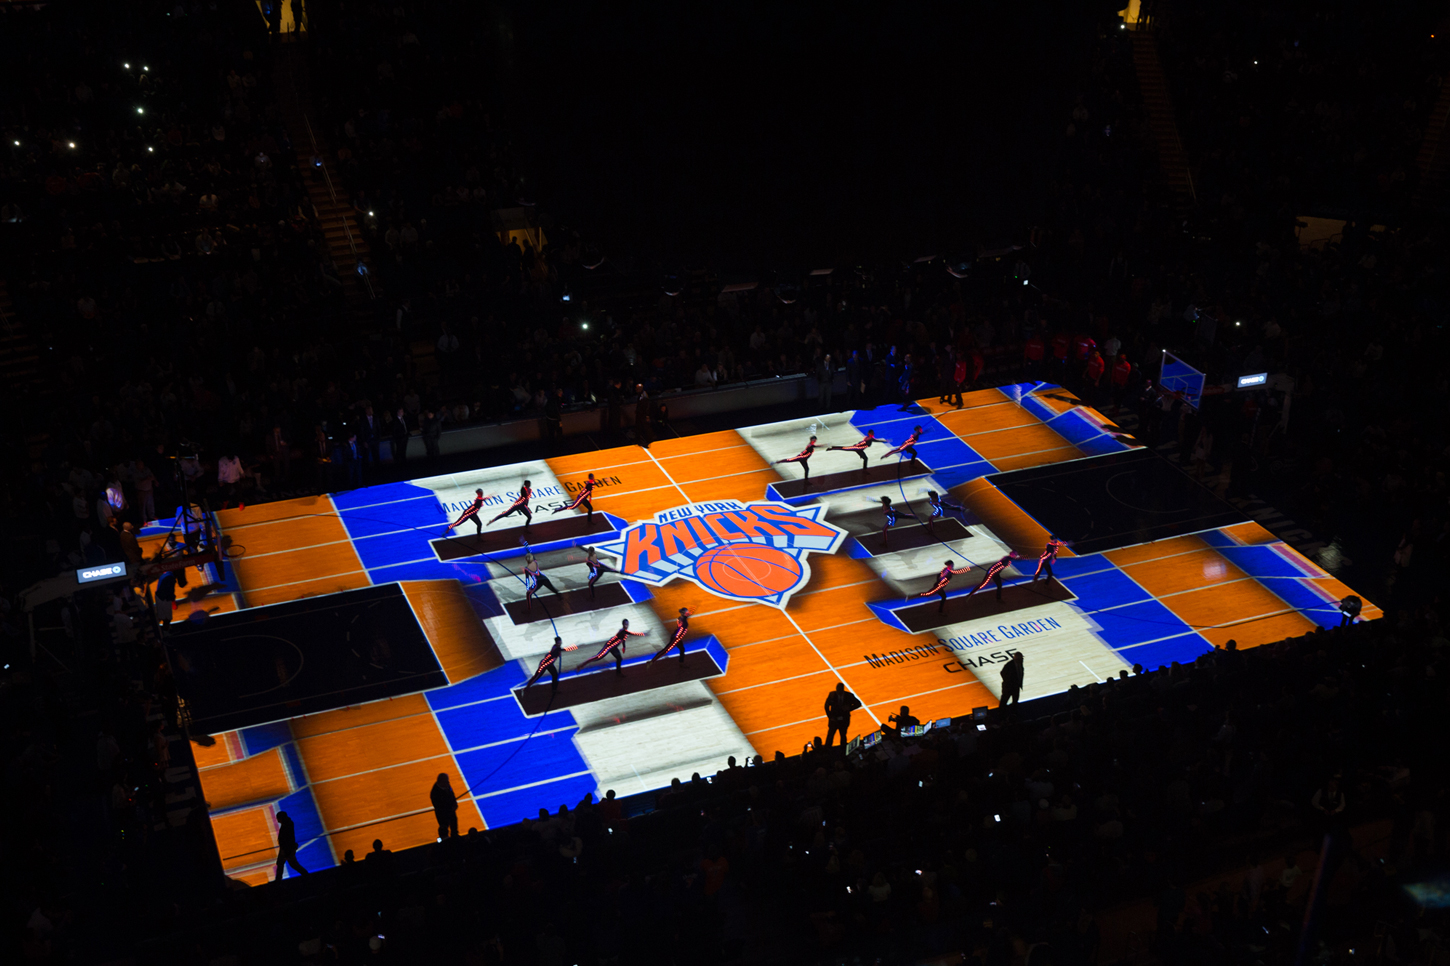 MSG Thrills Knicksu0027 Fans With Floor Projection Extravaganza